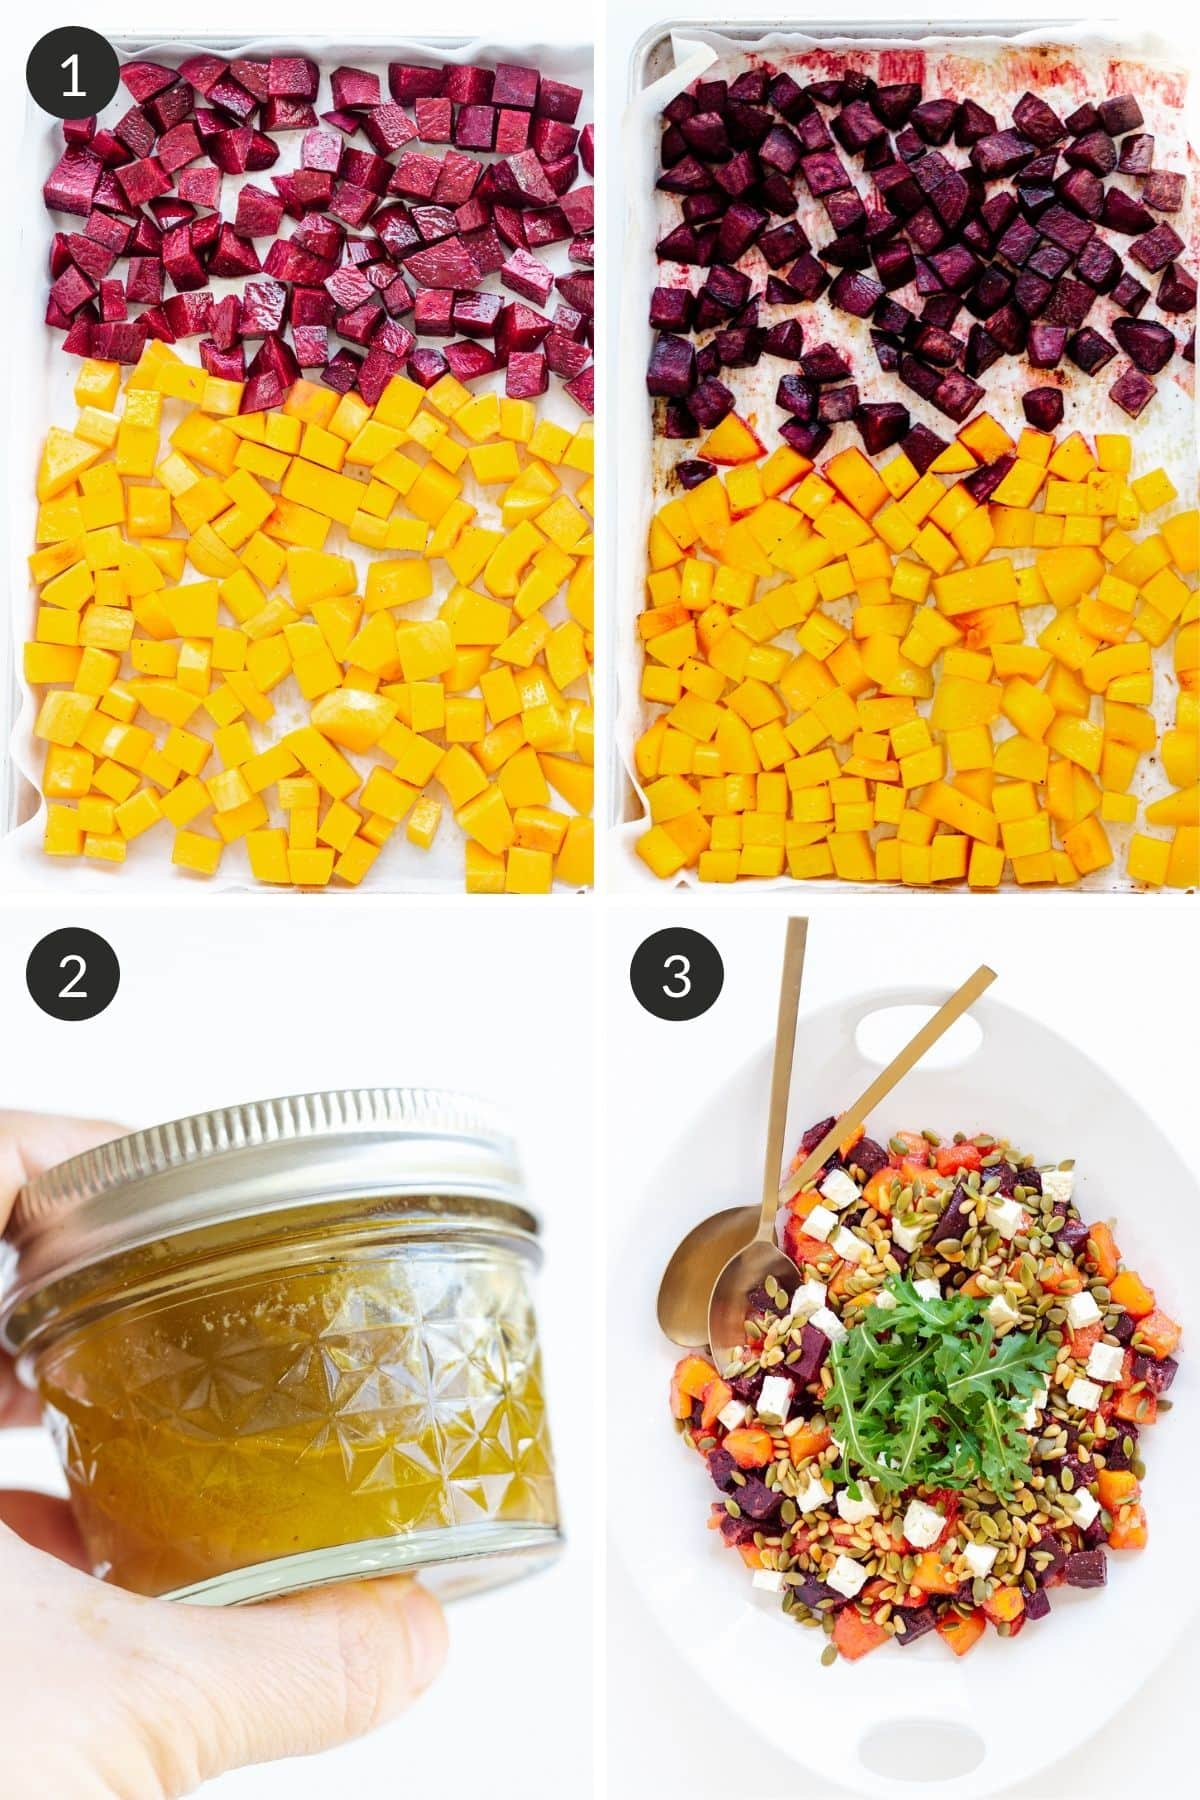 Photo collage showing how to make a roasted pumpkin and beetroot salad step by step.